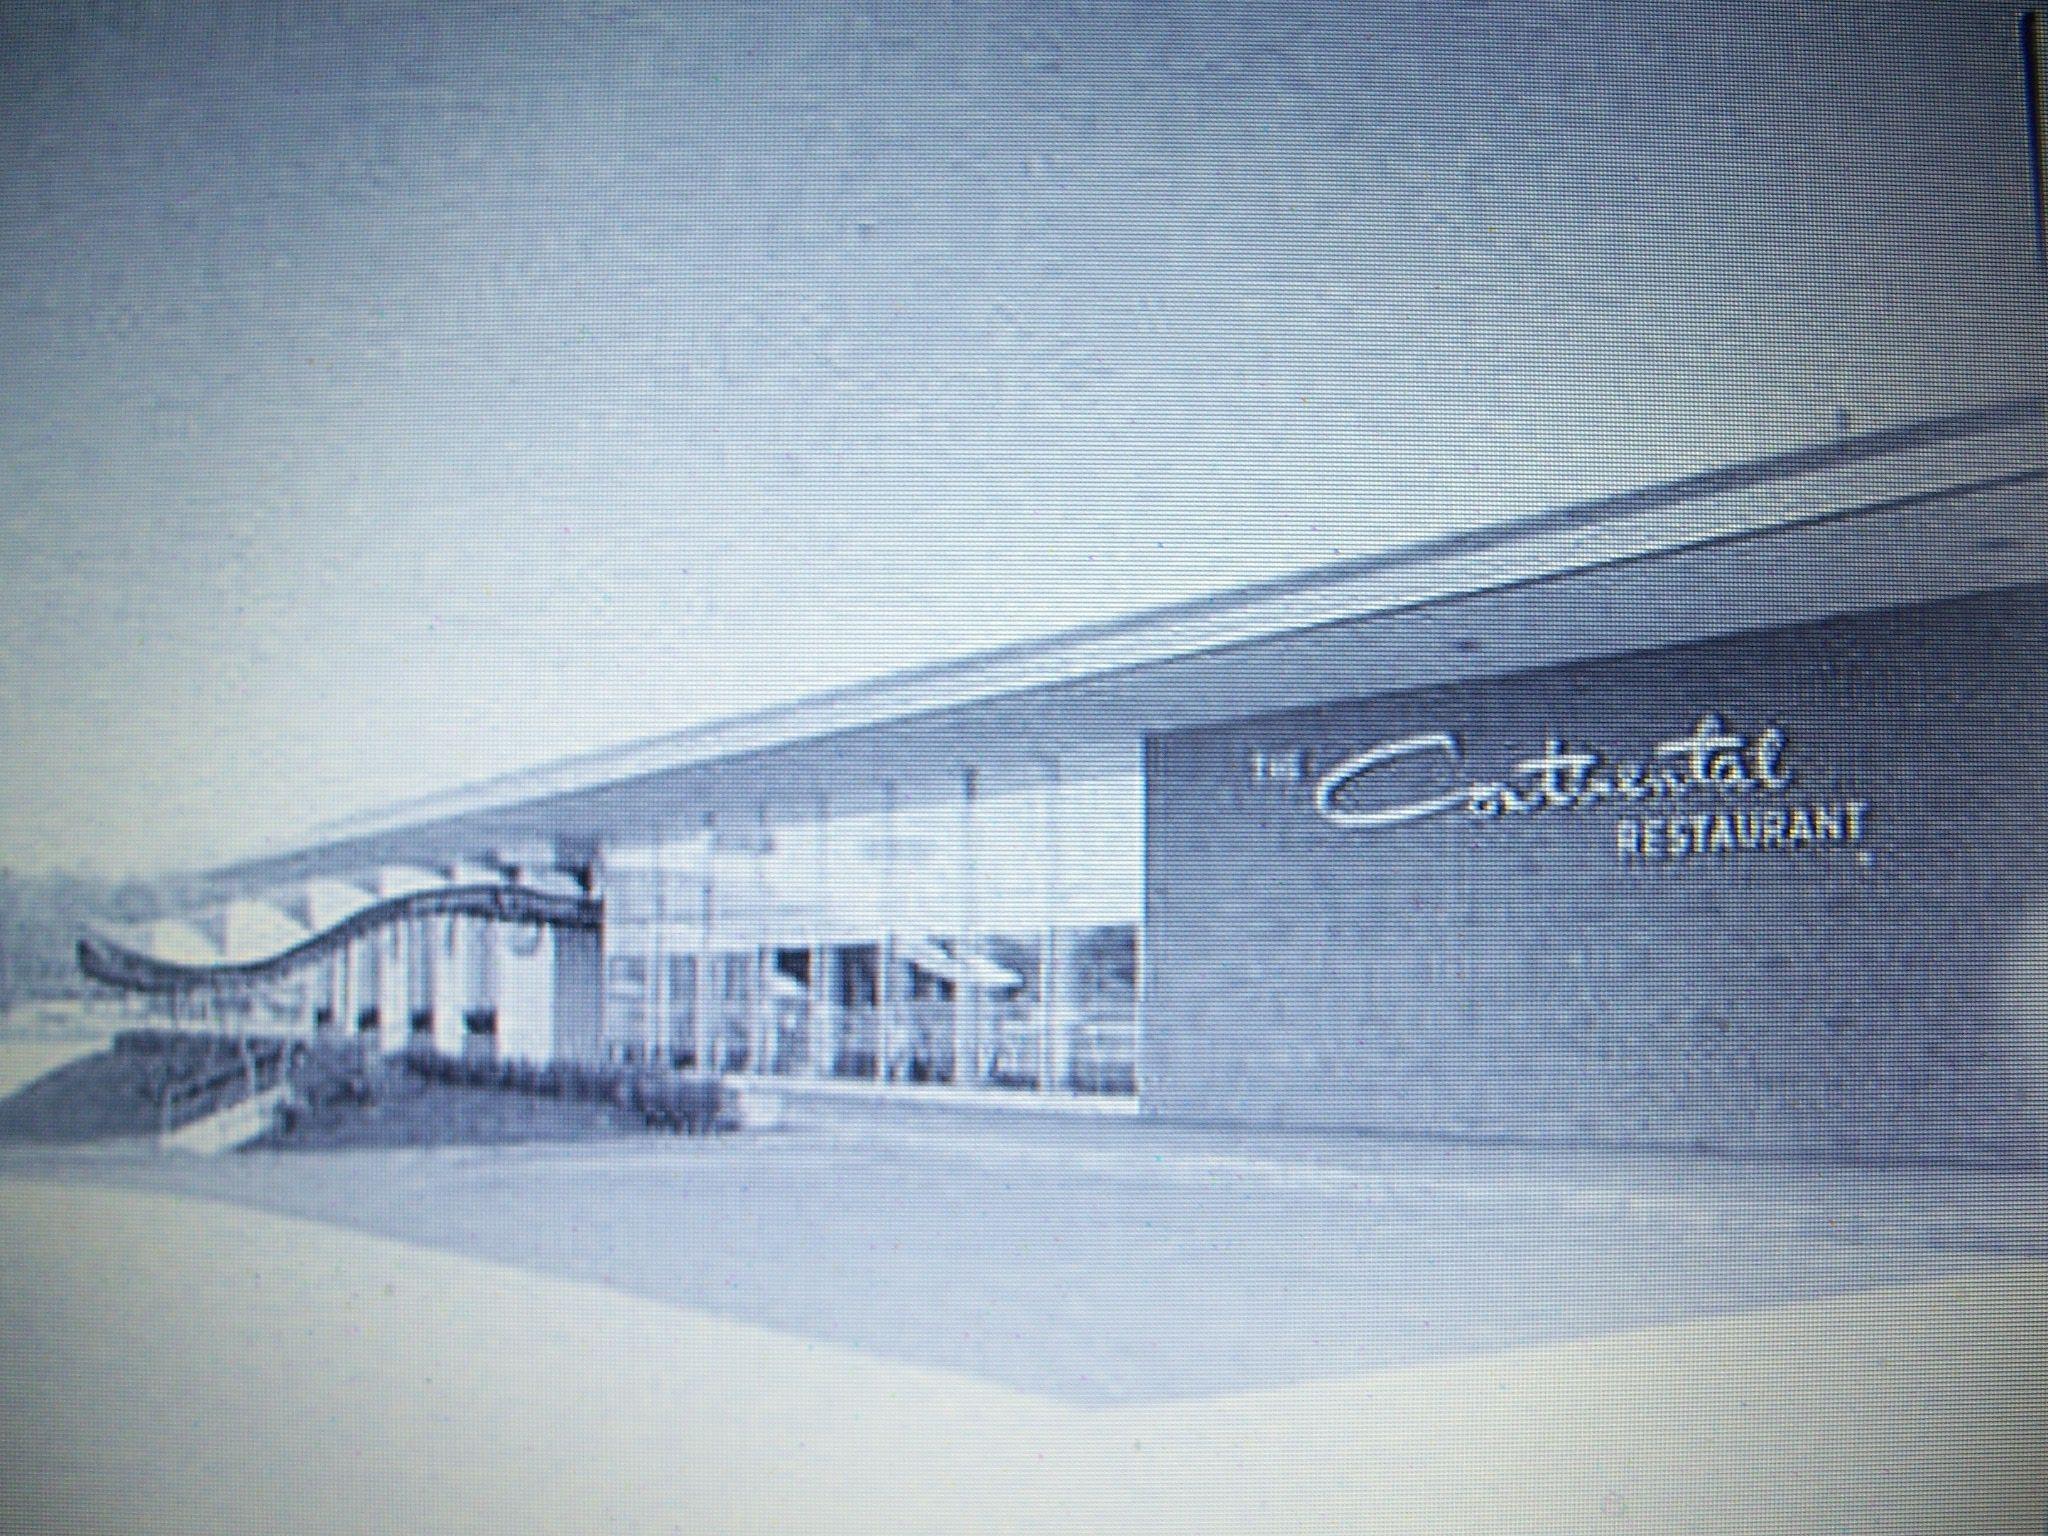 The continental restaurant paramus later became the - Restaurants near garden state plaza ...